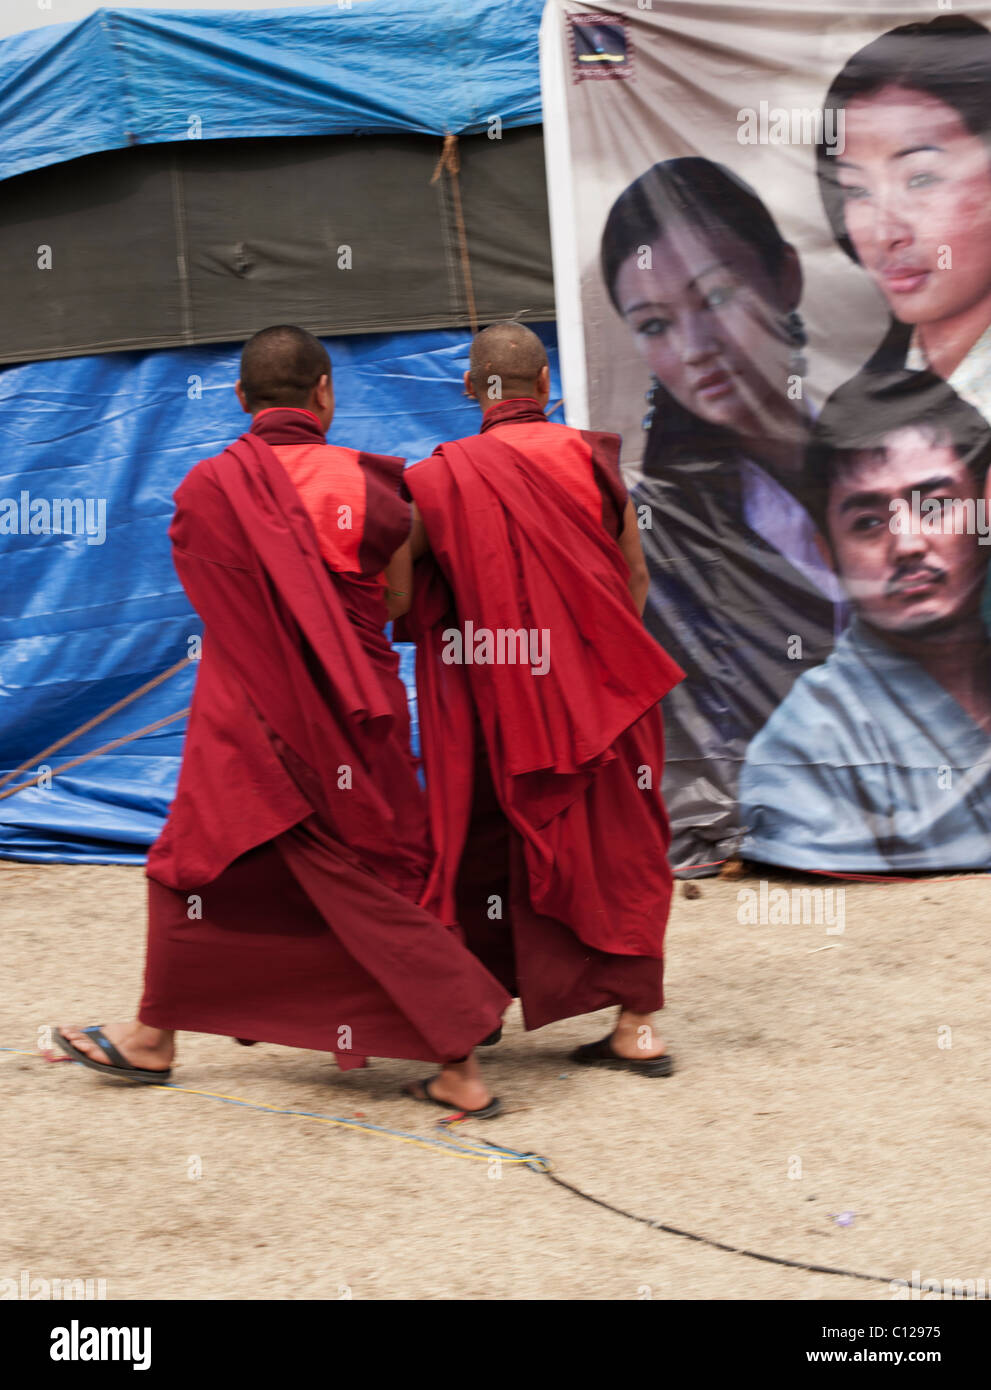 Buddhist monks ponder the virtues of buying a ticket to a new film being shown in a tent at a festival in rural Stock Photo